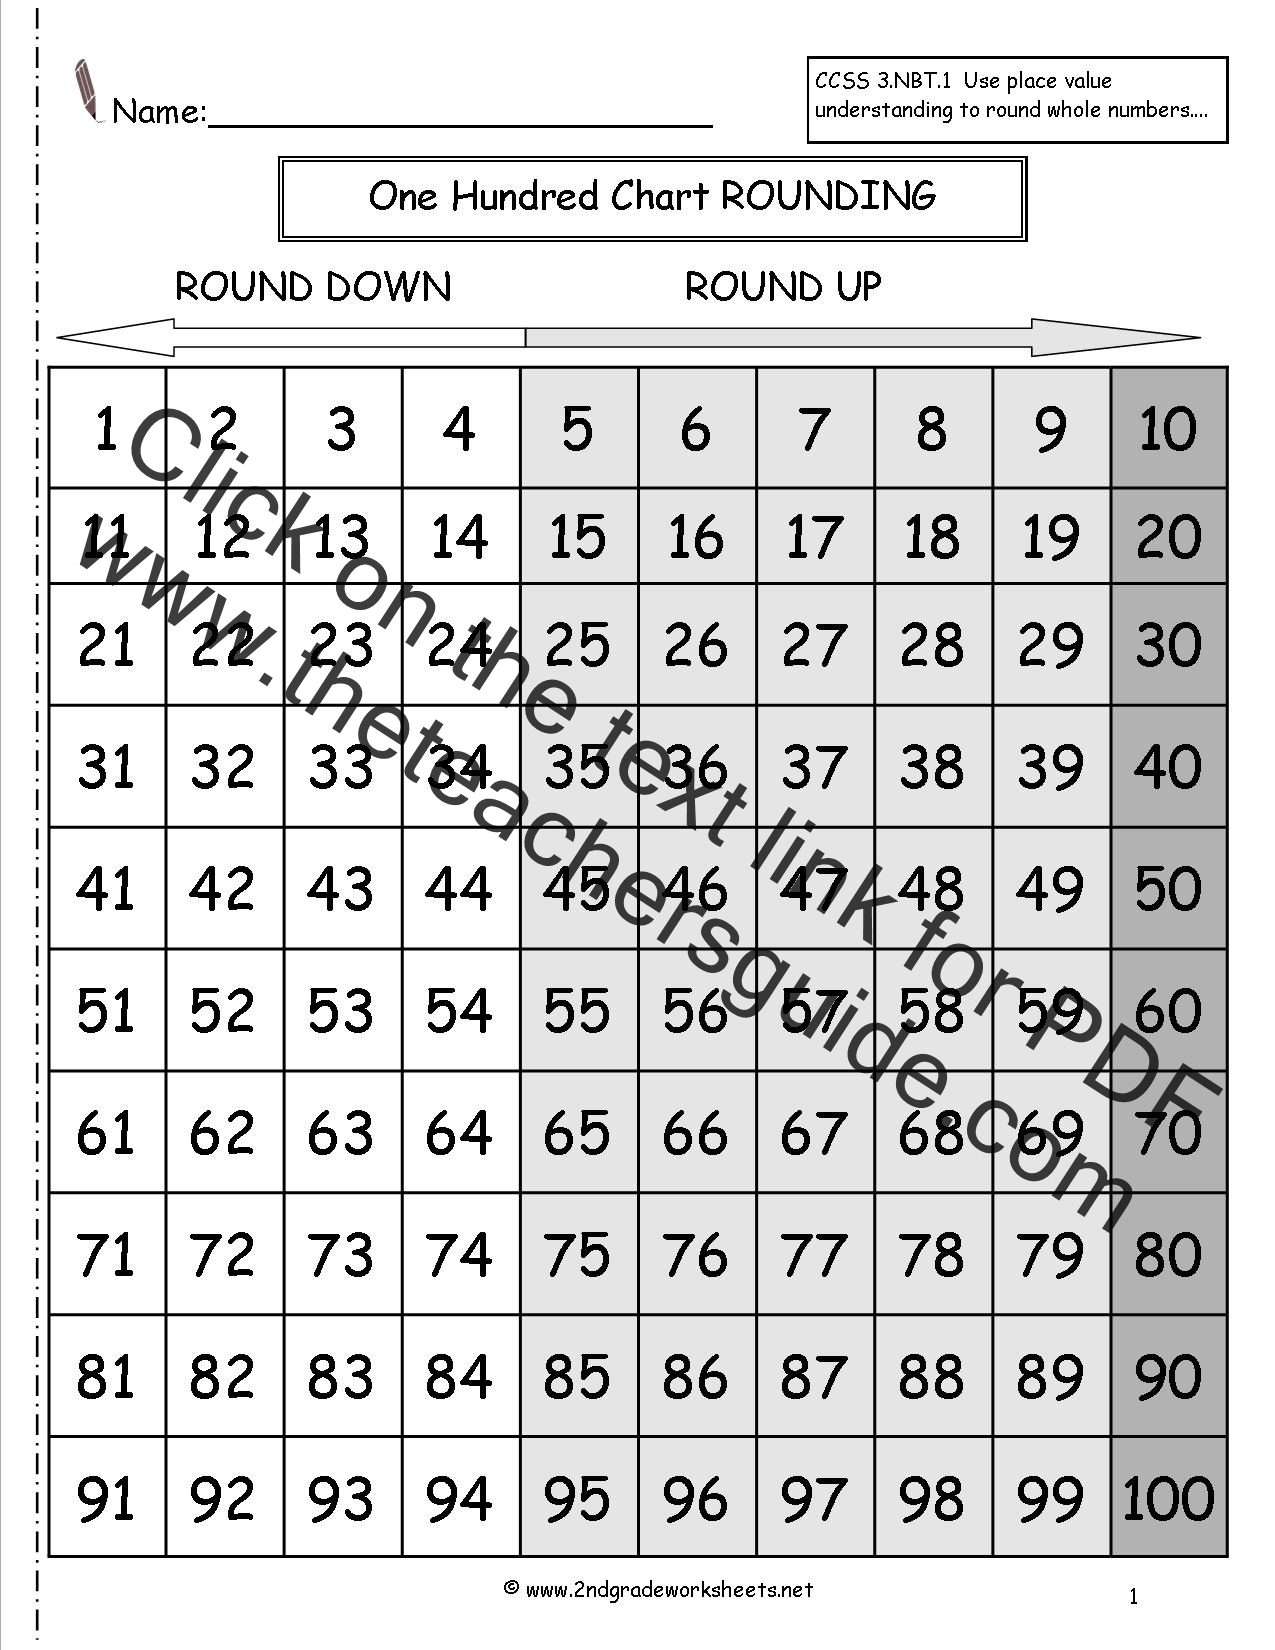 worksheet Math Worksheets Common Core free math worksheets and printouts rounding numbers common core